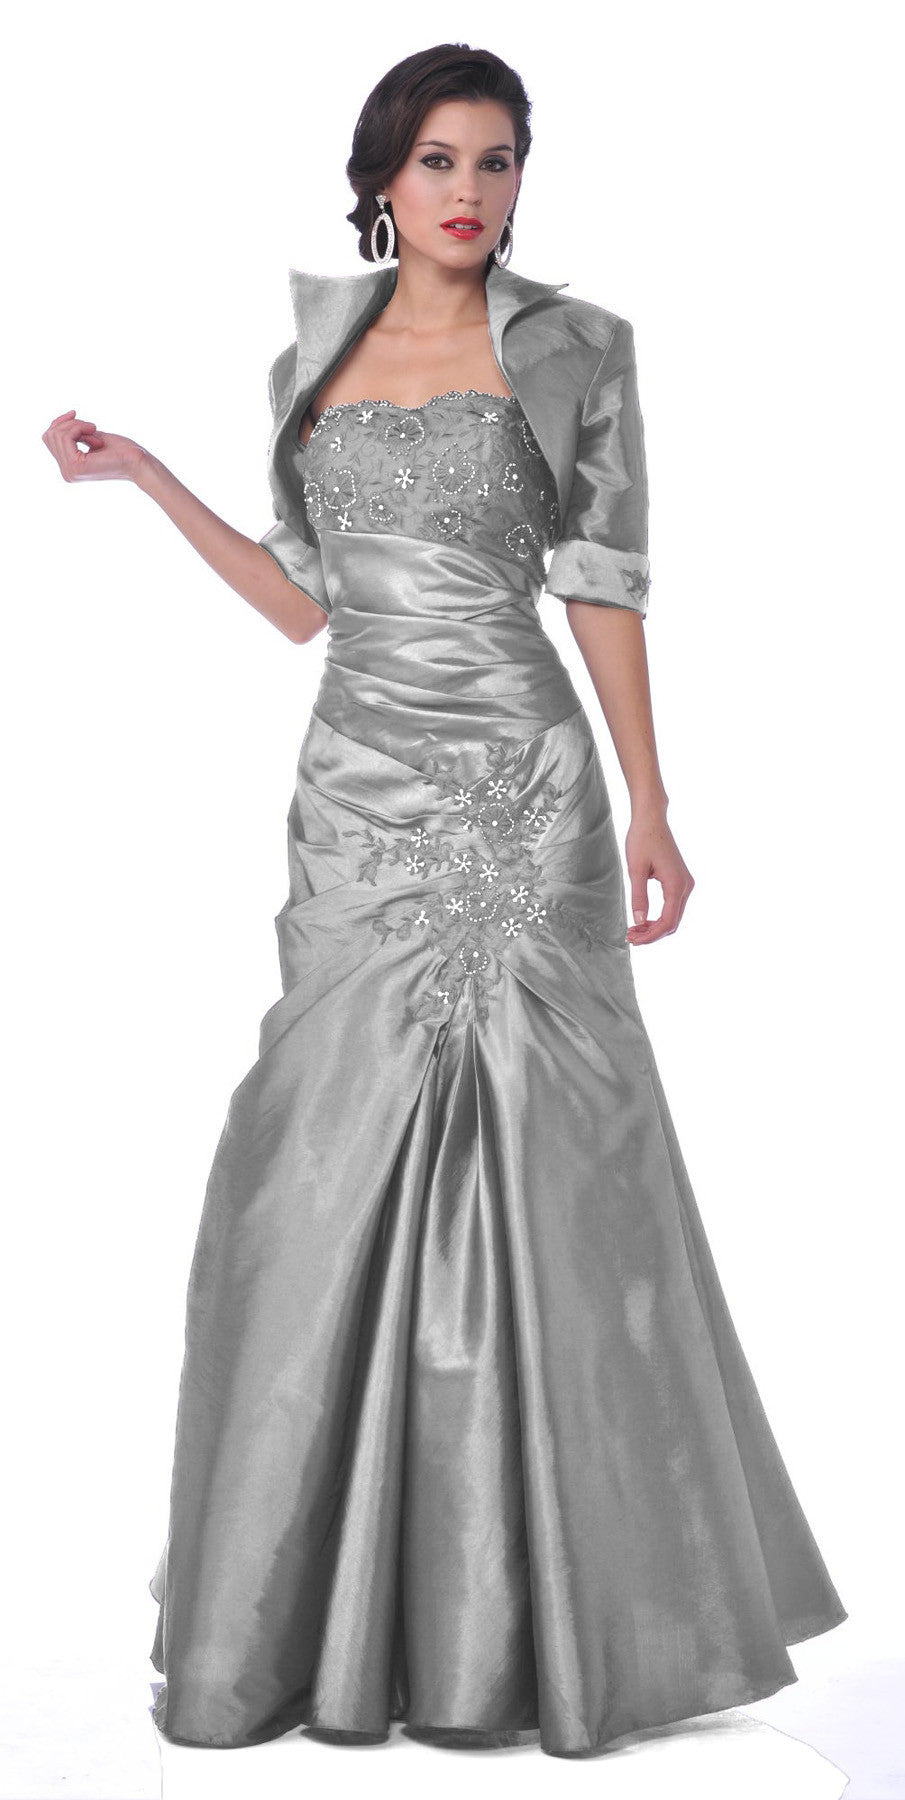 ff1bdfd0d91 Mother Of The Bride Gowns With Bolero Jackets - Data Dynamic AG